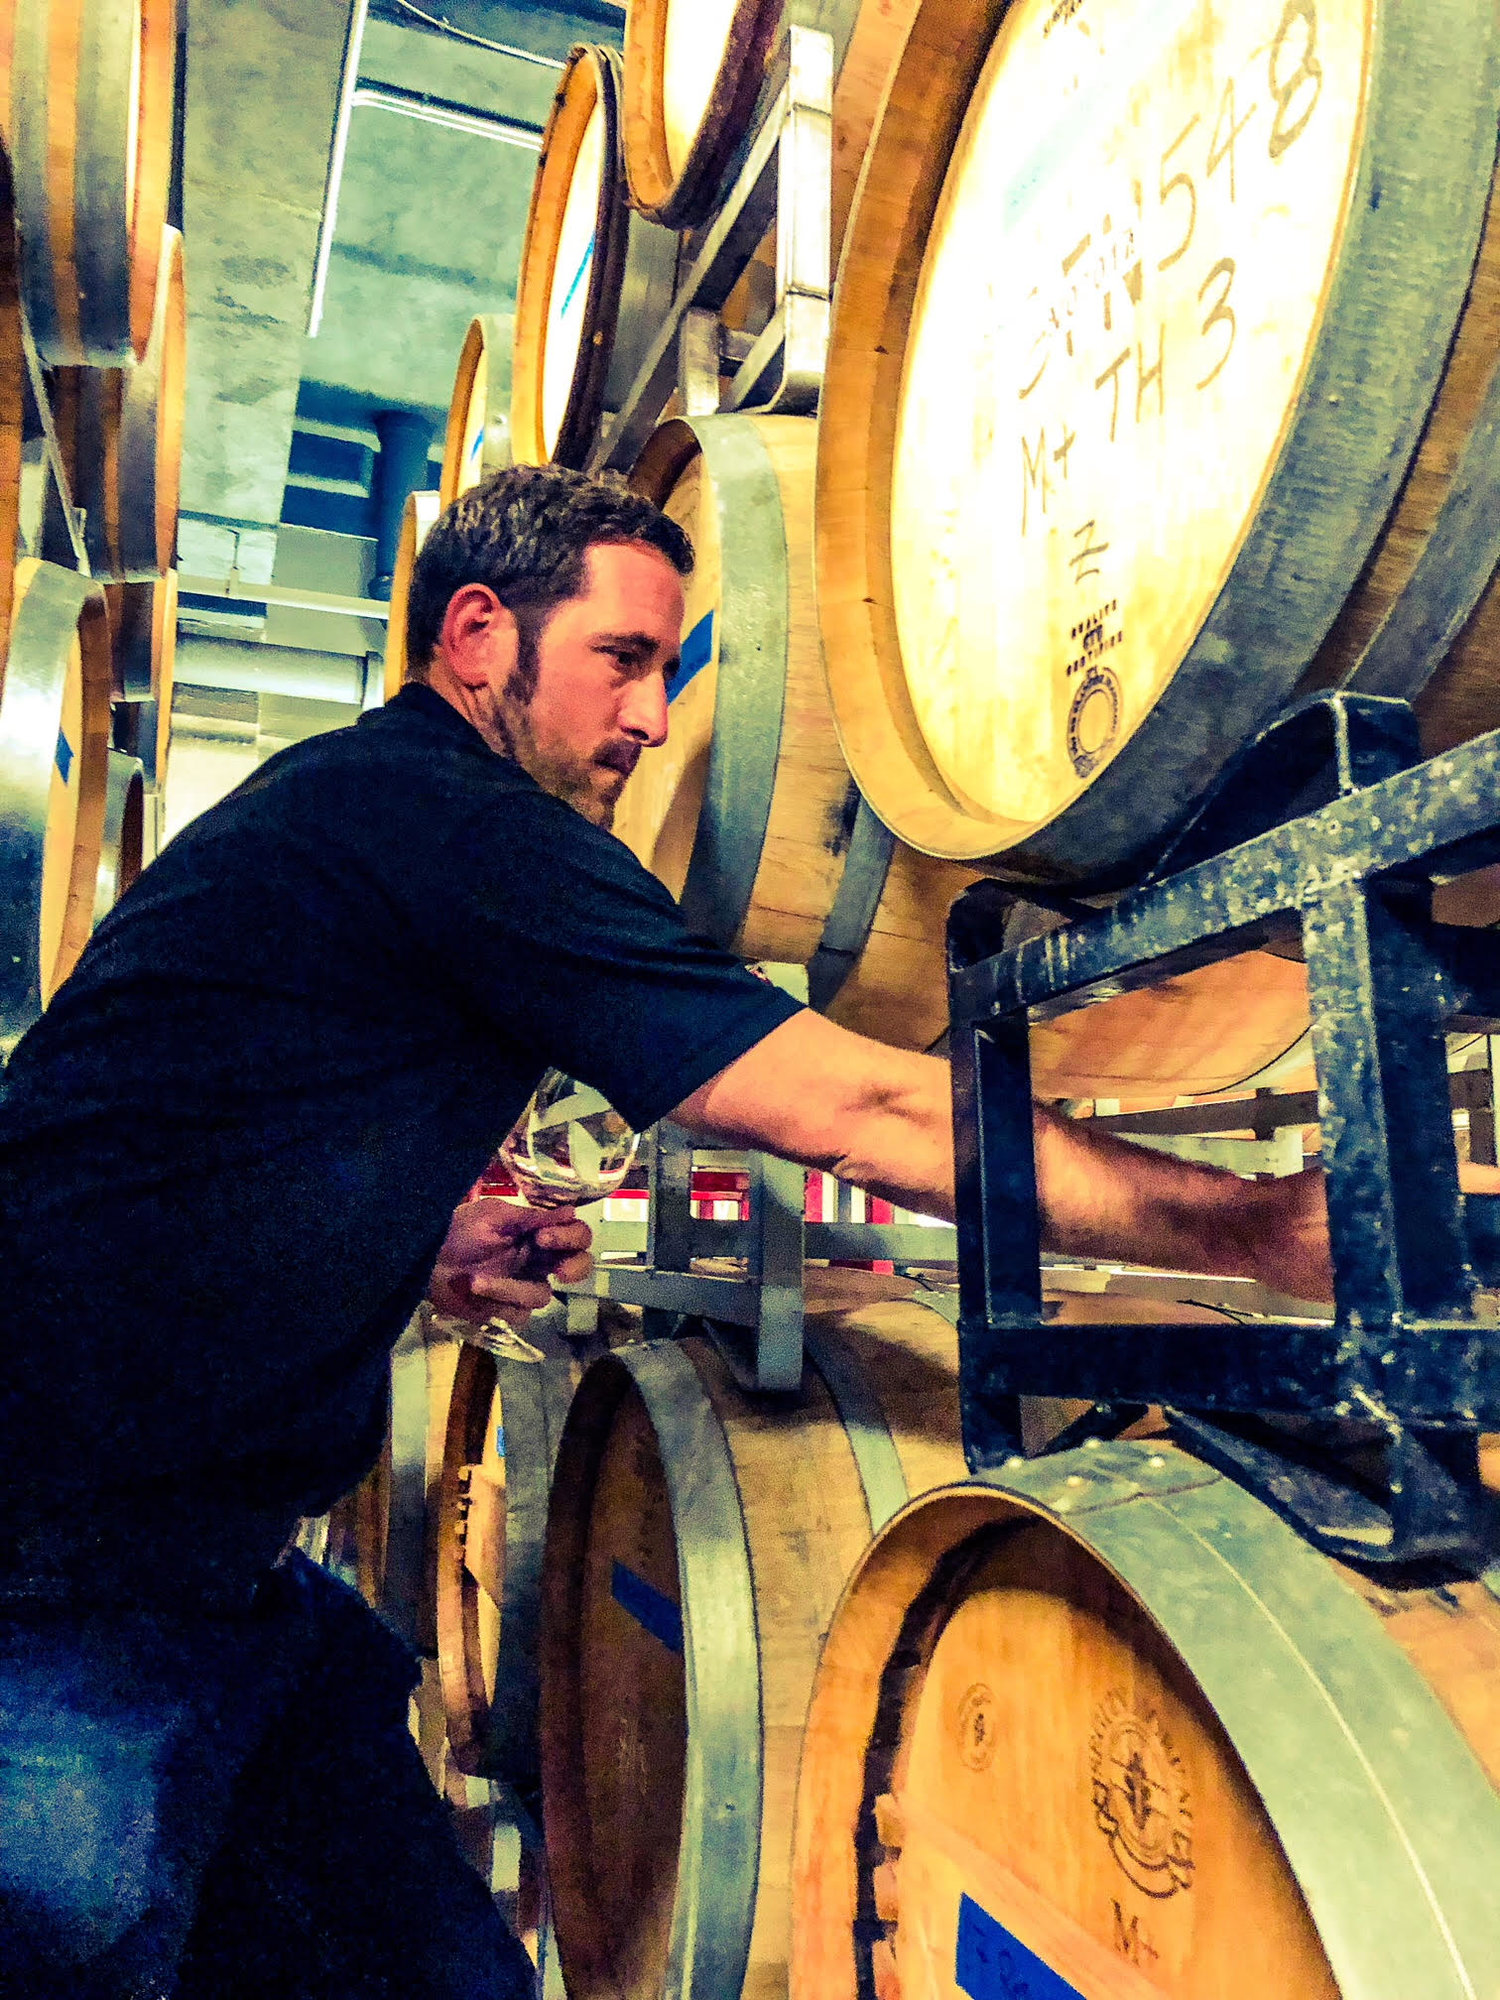 Great photo here of the talented Ryan Crane, founder of Kerloo Cellars.